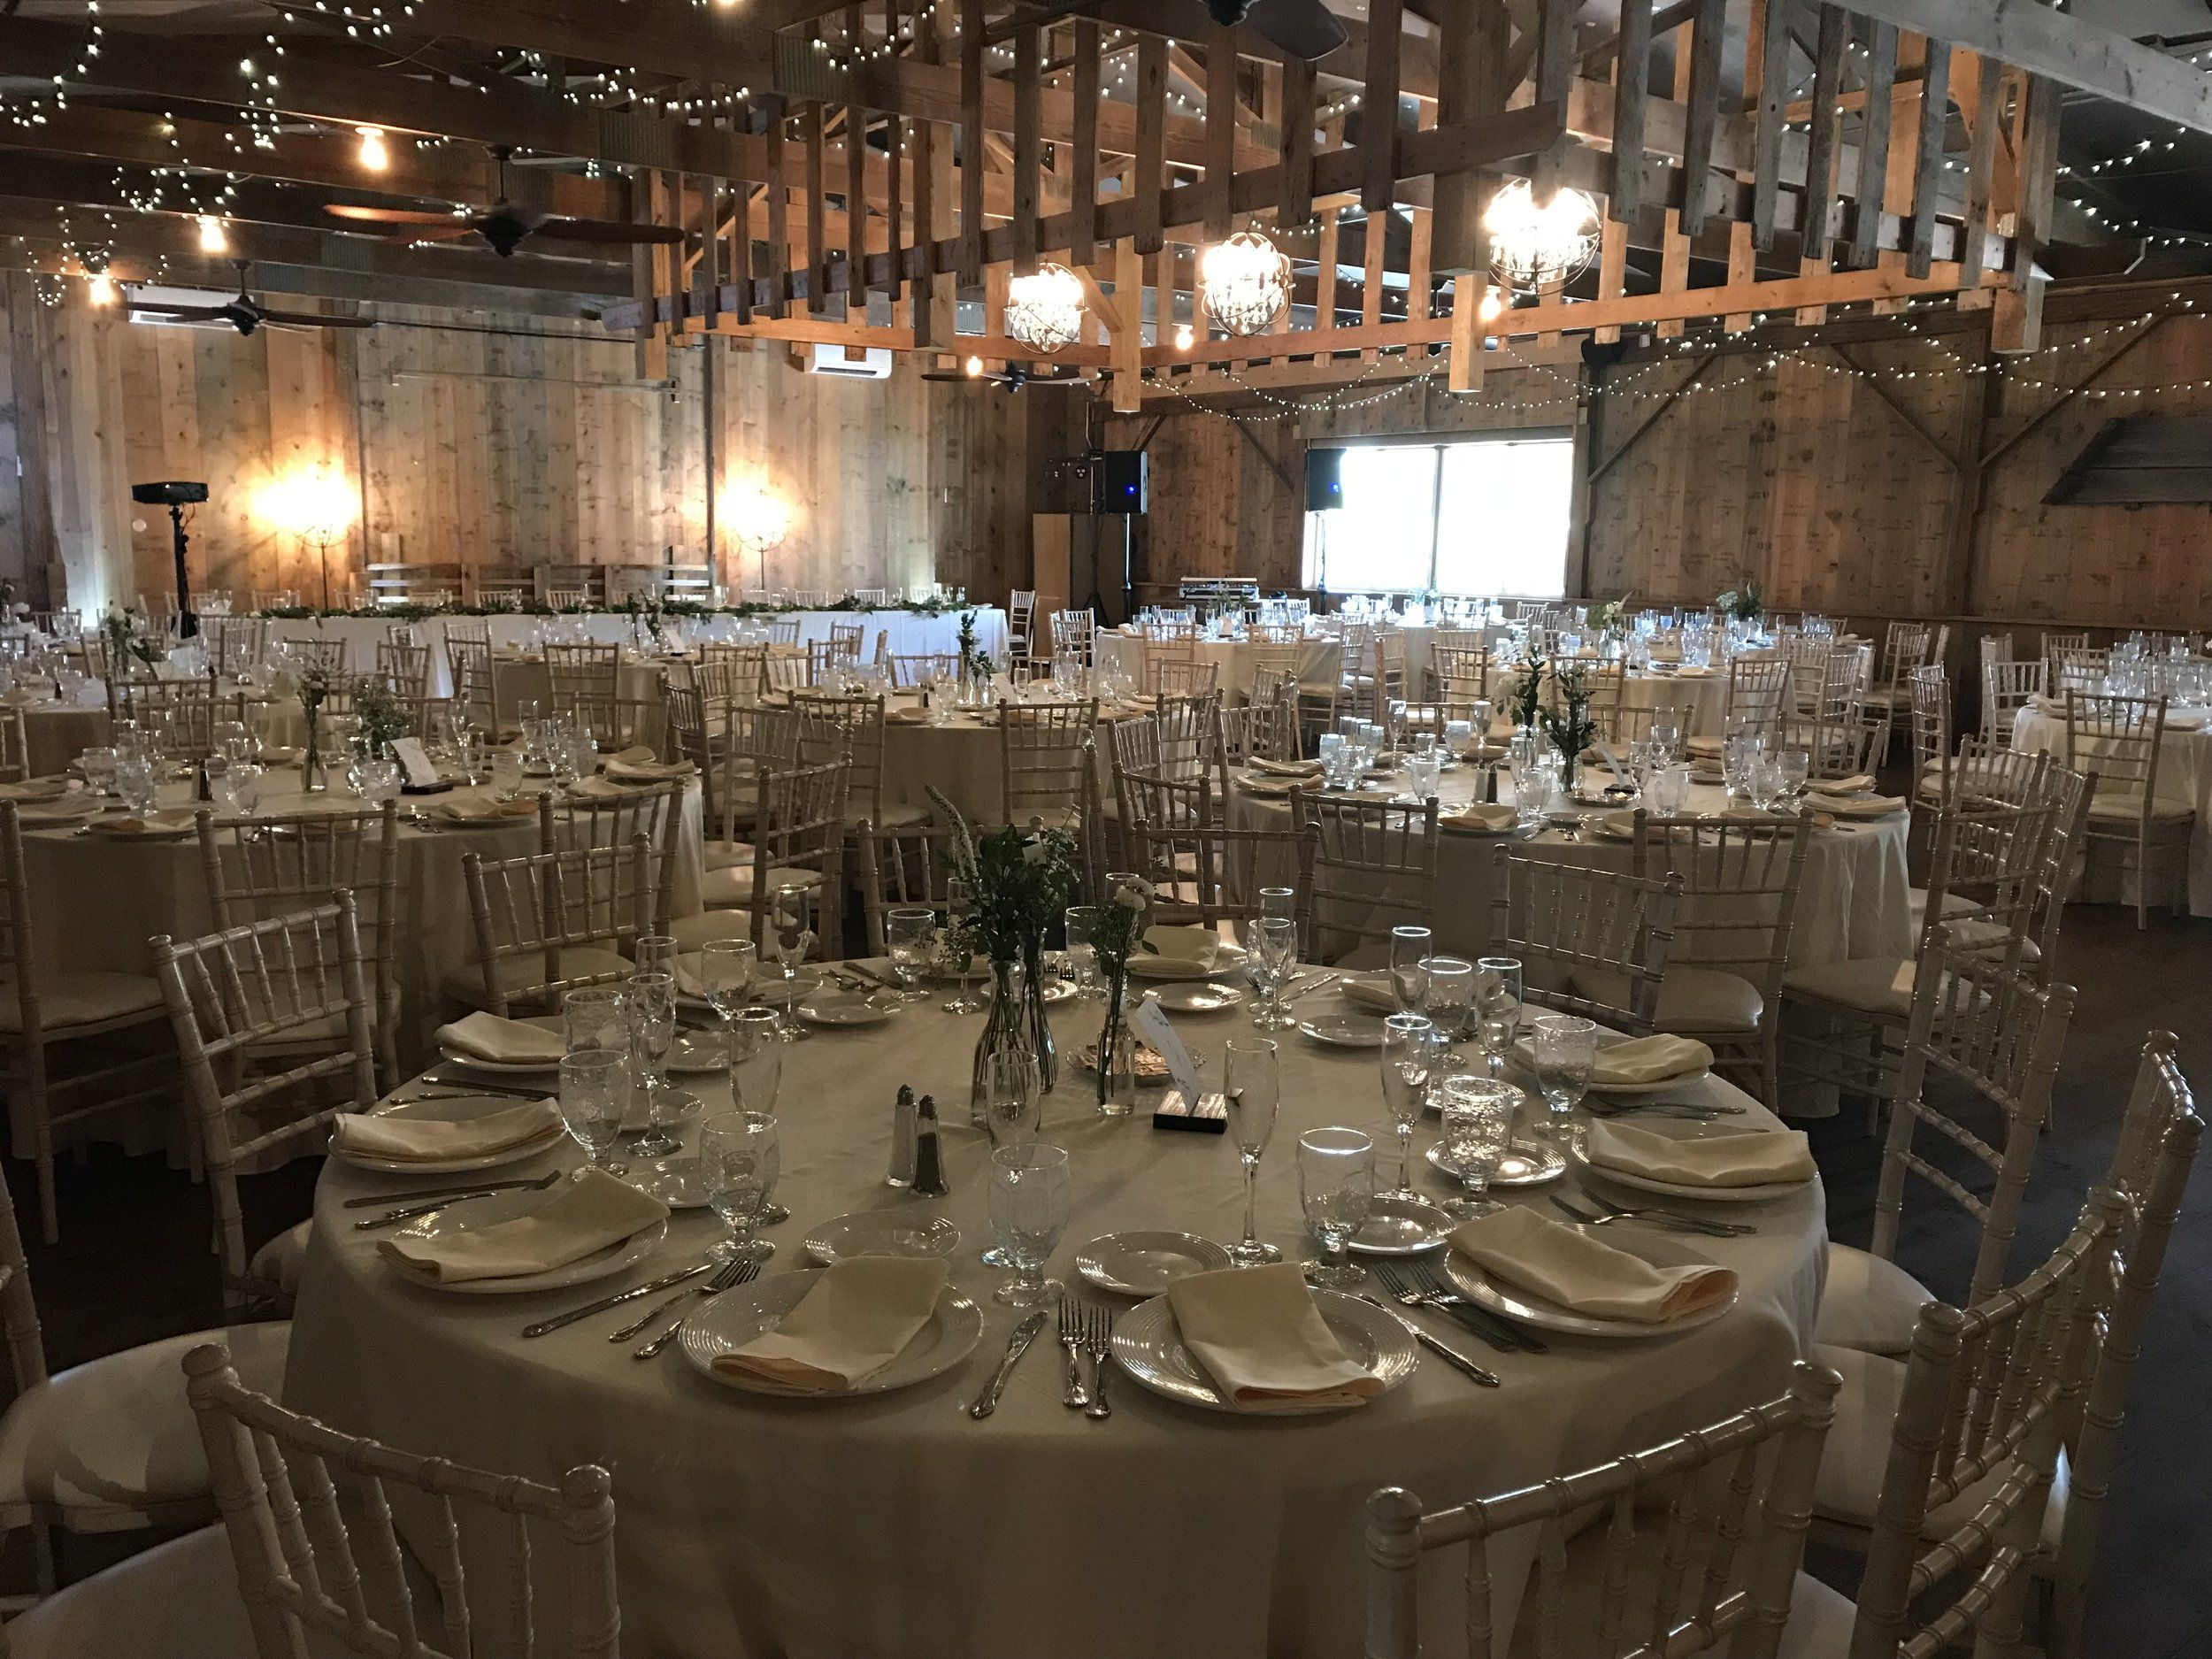 Columbus Ohio Wedding Venues That Allow Outside Catering In 2020 Ohio Wedding Venues Columbus Ohio Wedding Venues Columbus Wedding Venues